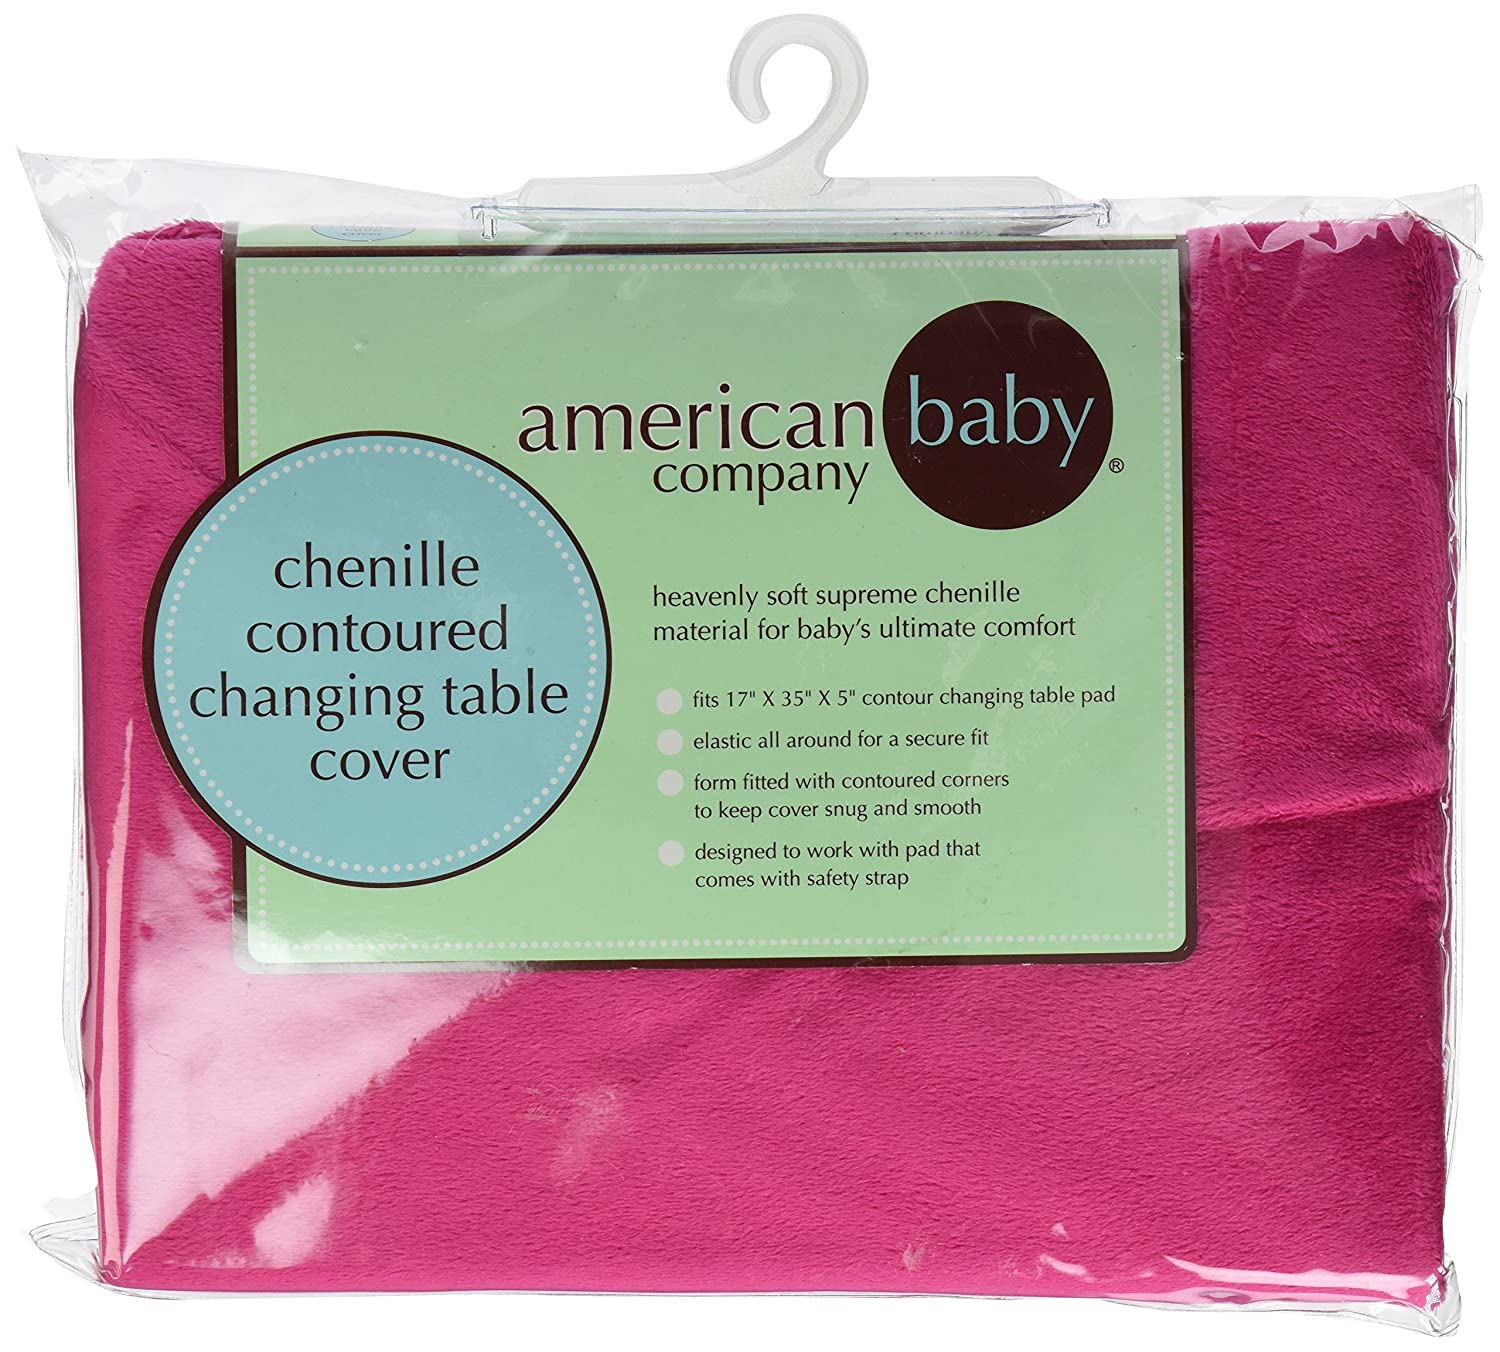 American Baby Company Heavenly Soft Chenille Fitted Contoured Changing Pad Cover,Ecru for Boys and Girls